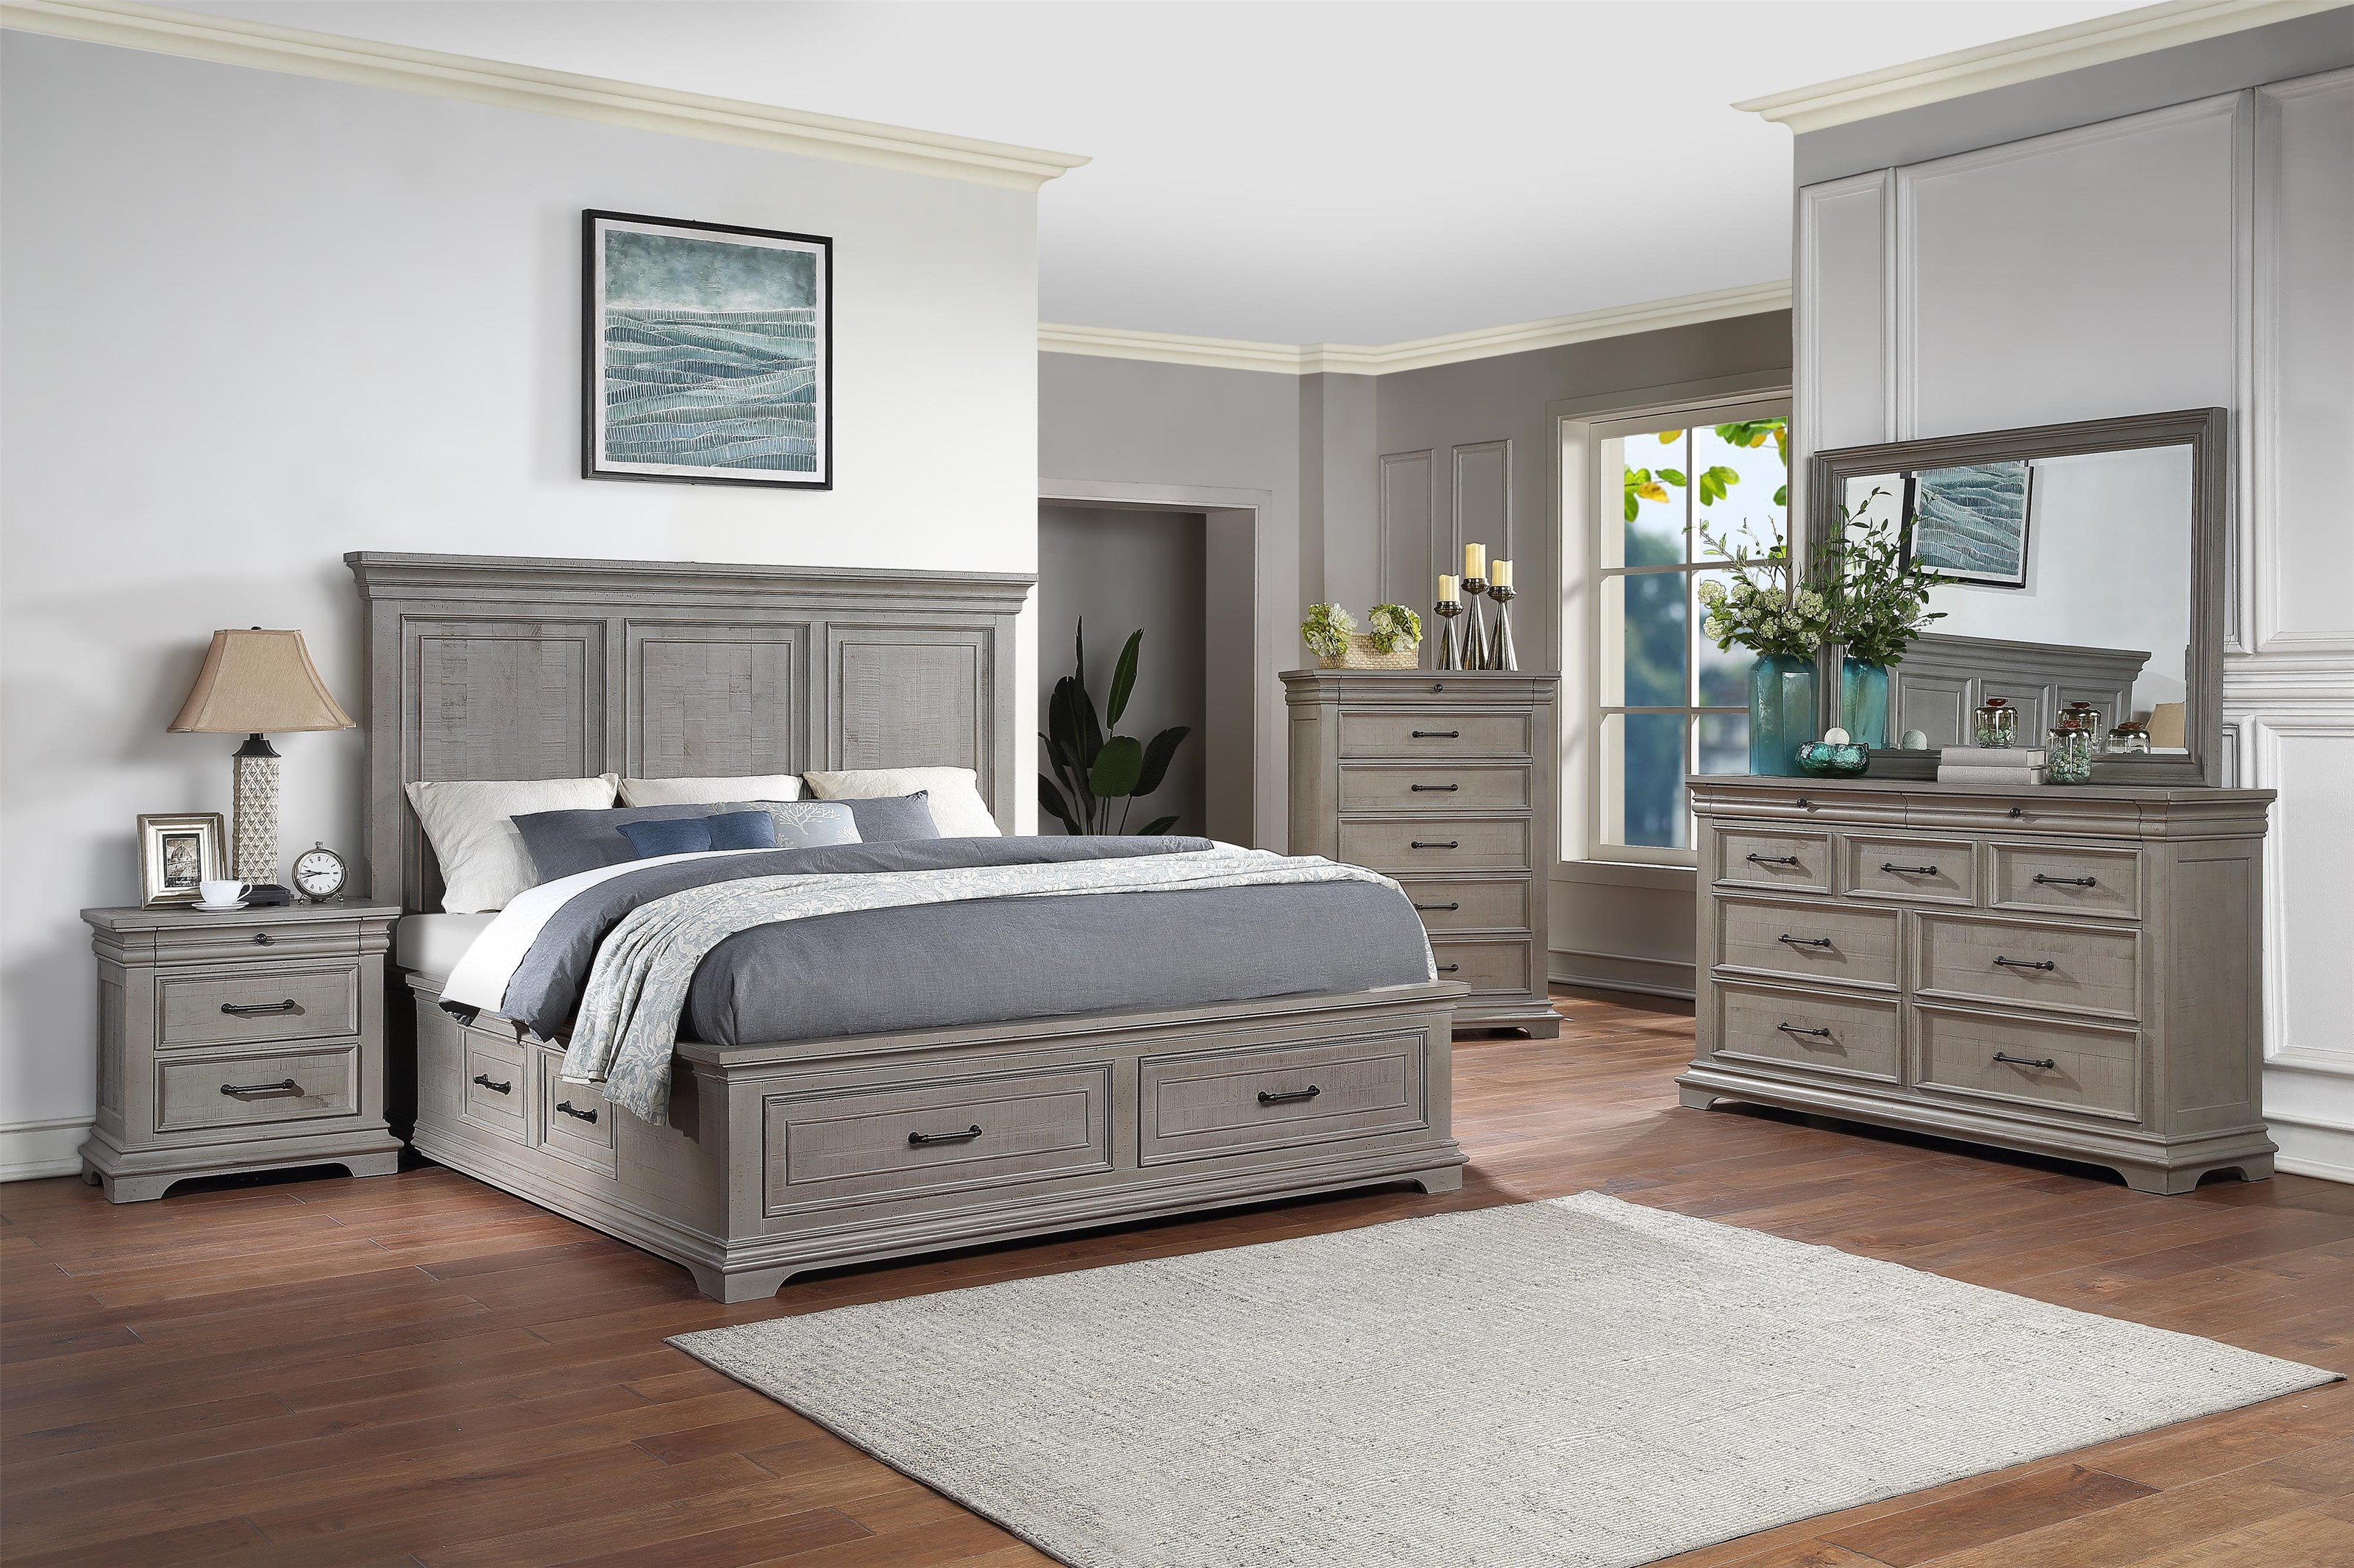 Lynd 5 Piece Queen Storage Bedroom Group by HH at Walker's Furniture